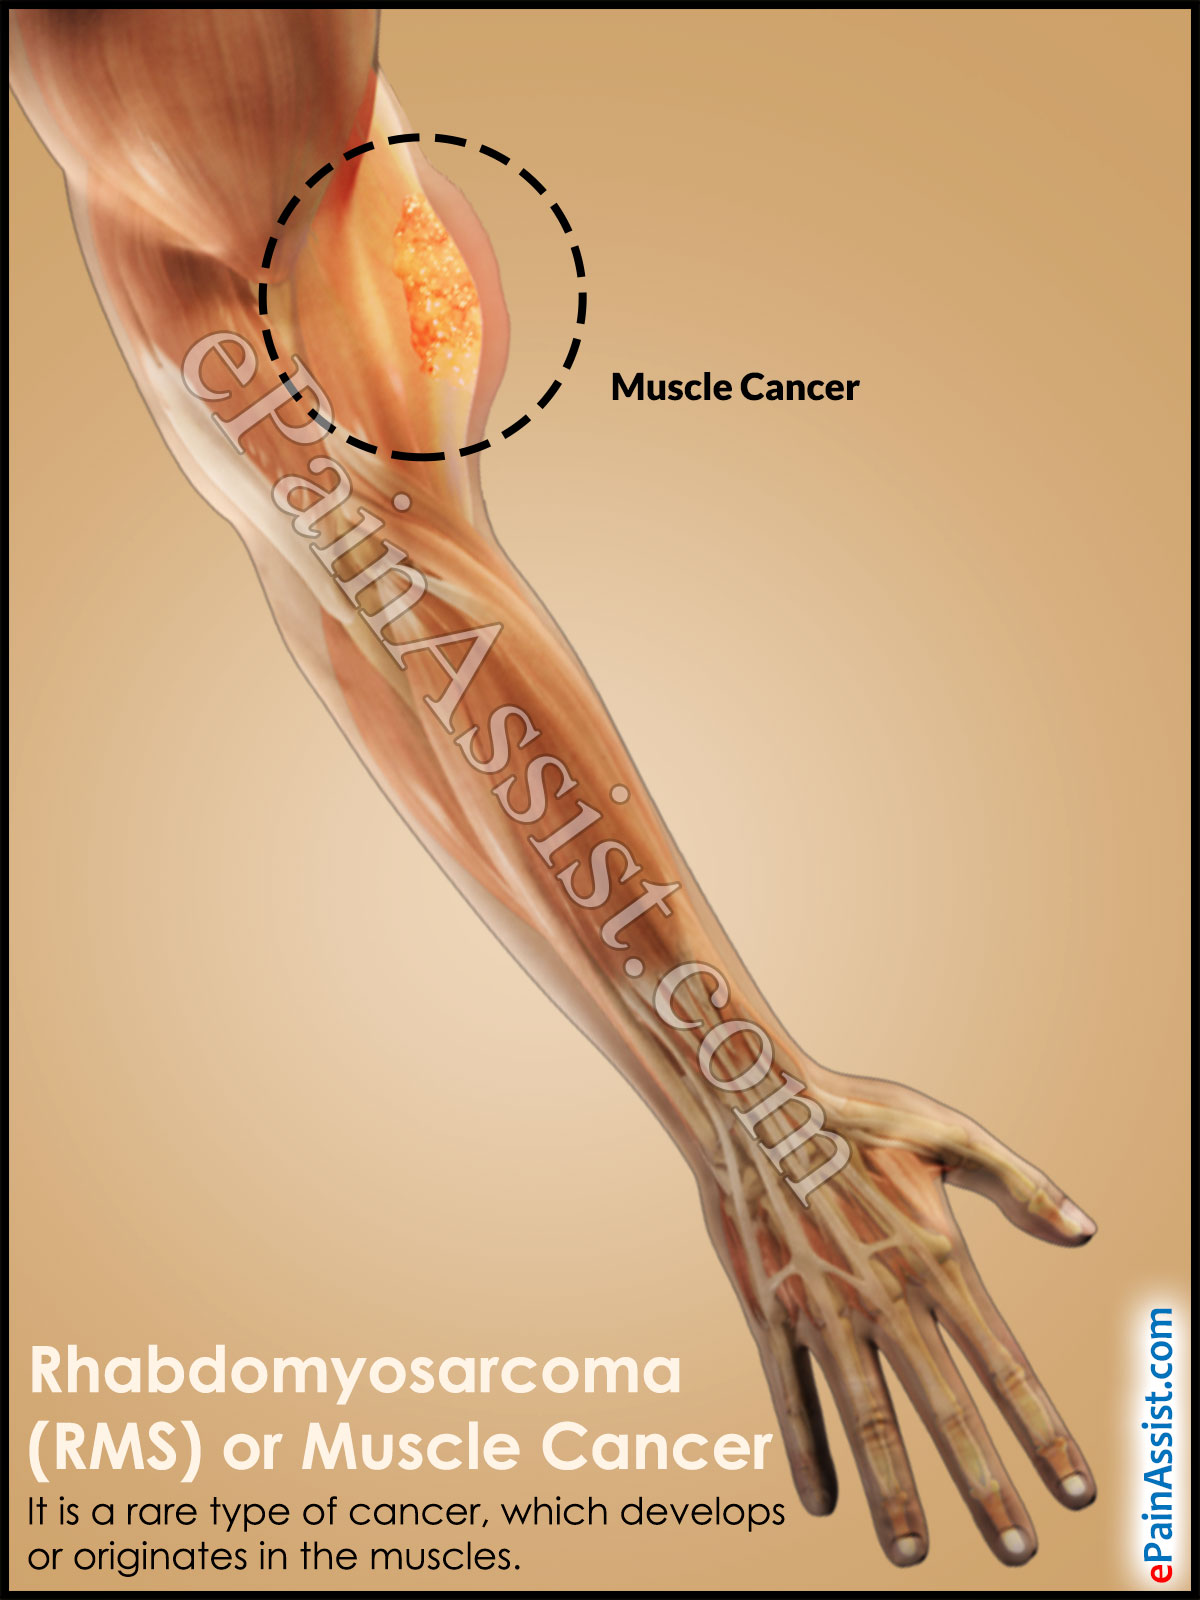 Rhabdomyosarcoma or Muscle Cancer